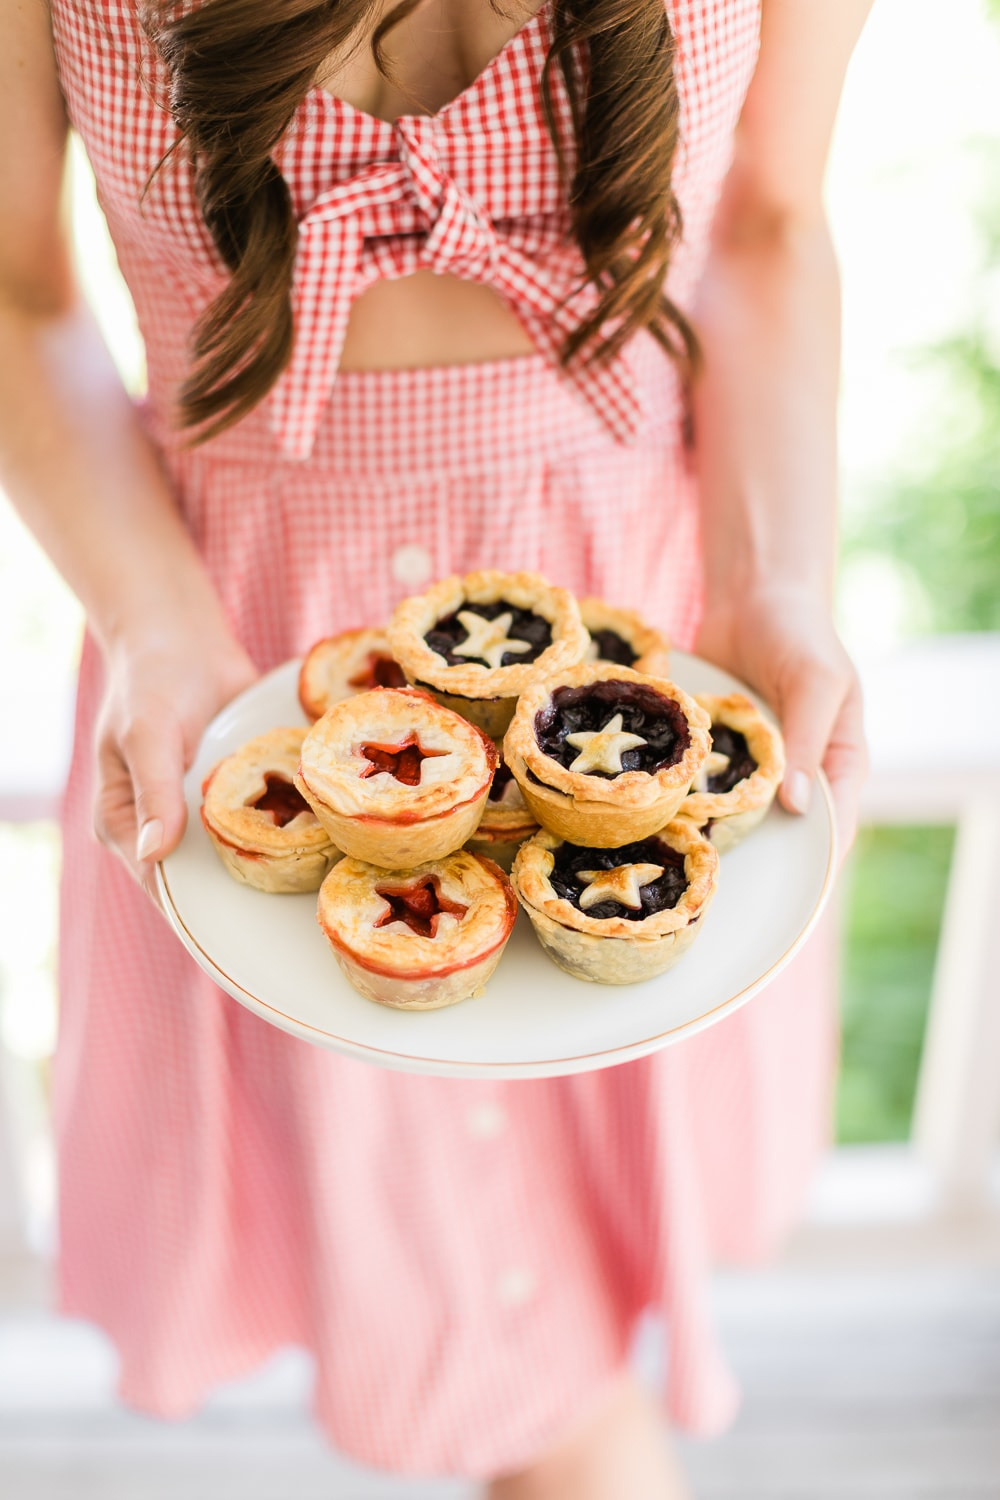 Affordable fashion blogger Stephanie Ziajka holding mini strawberry and blueberry pies in a red gingham dress on Diary of a Debutante